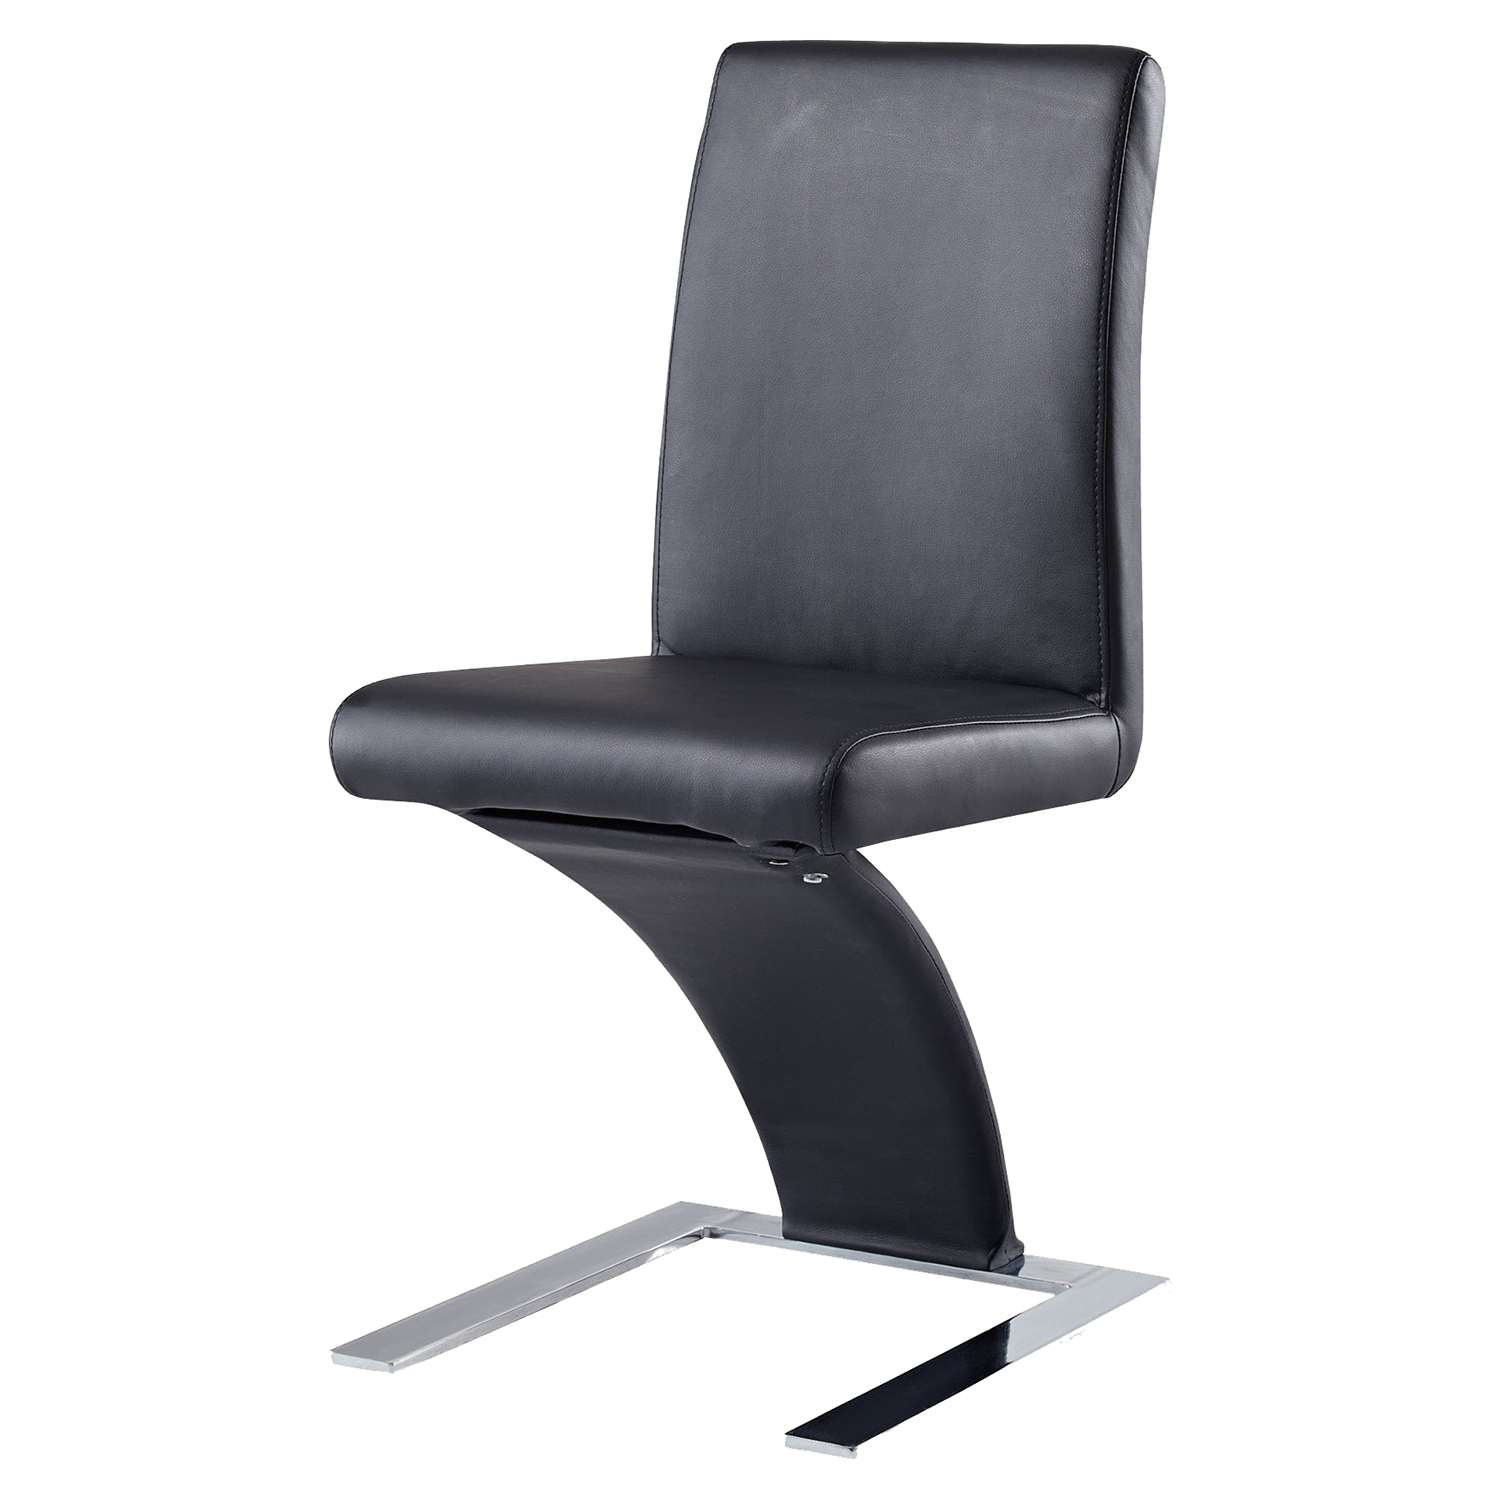 Anthony Dining Chair in Black - GLO-D88NDC-BL